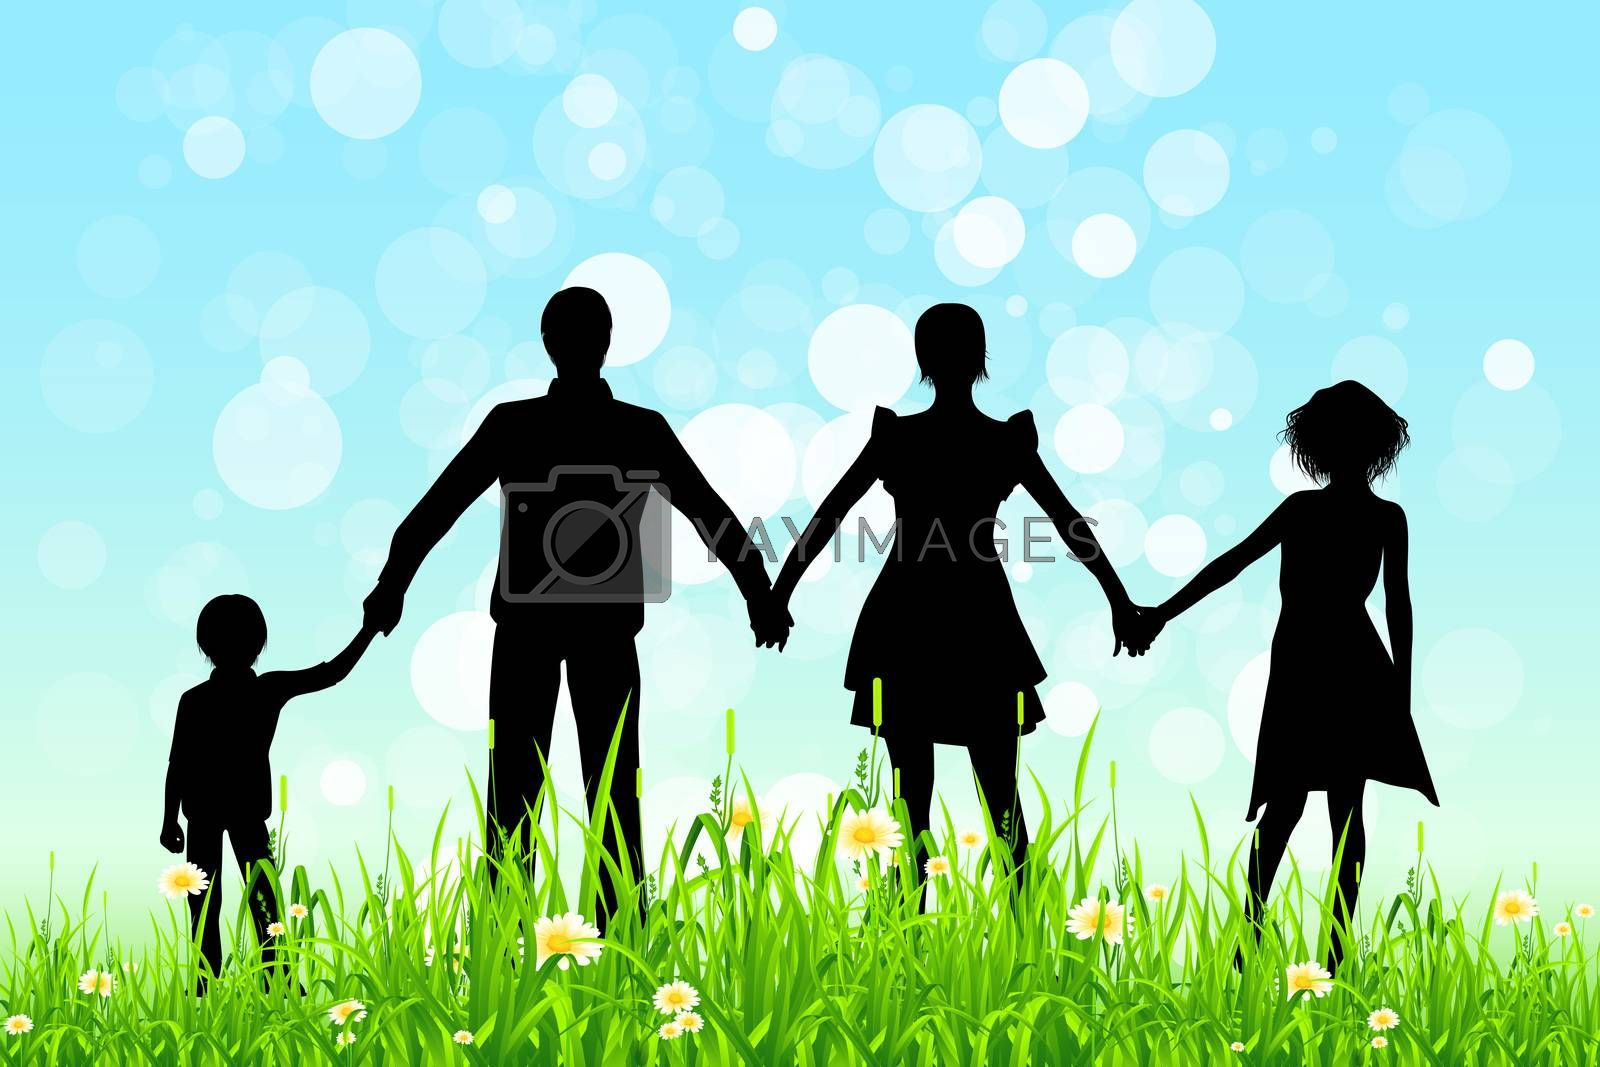 Green Grass and Blue Sky with Family Silhouettes by WaD